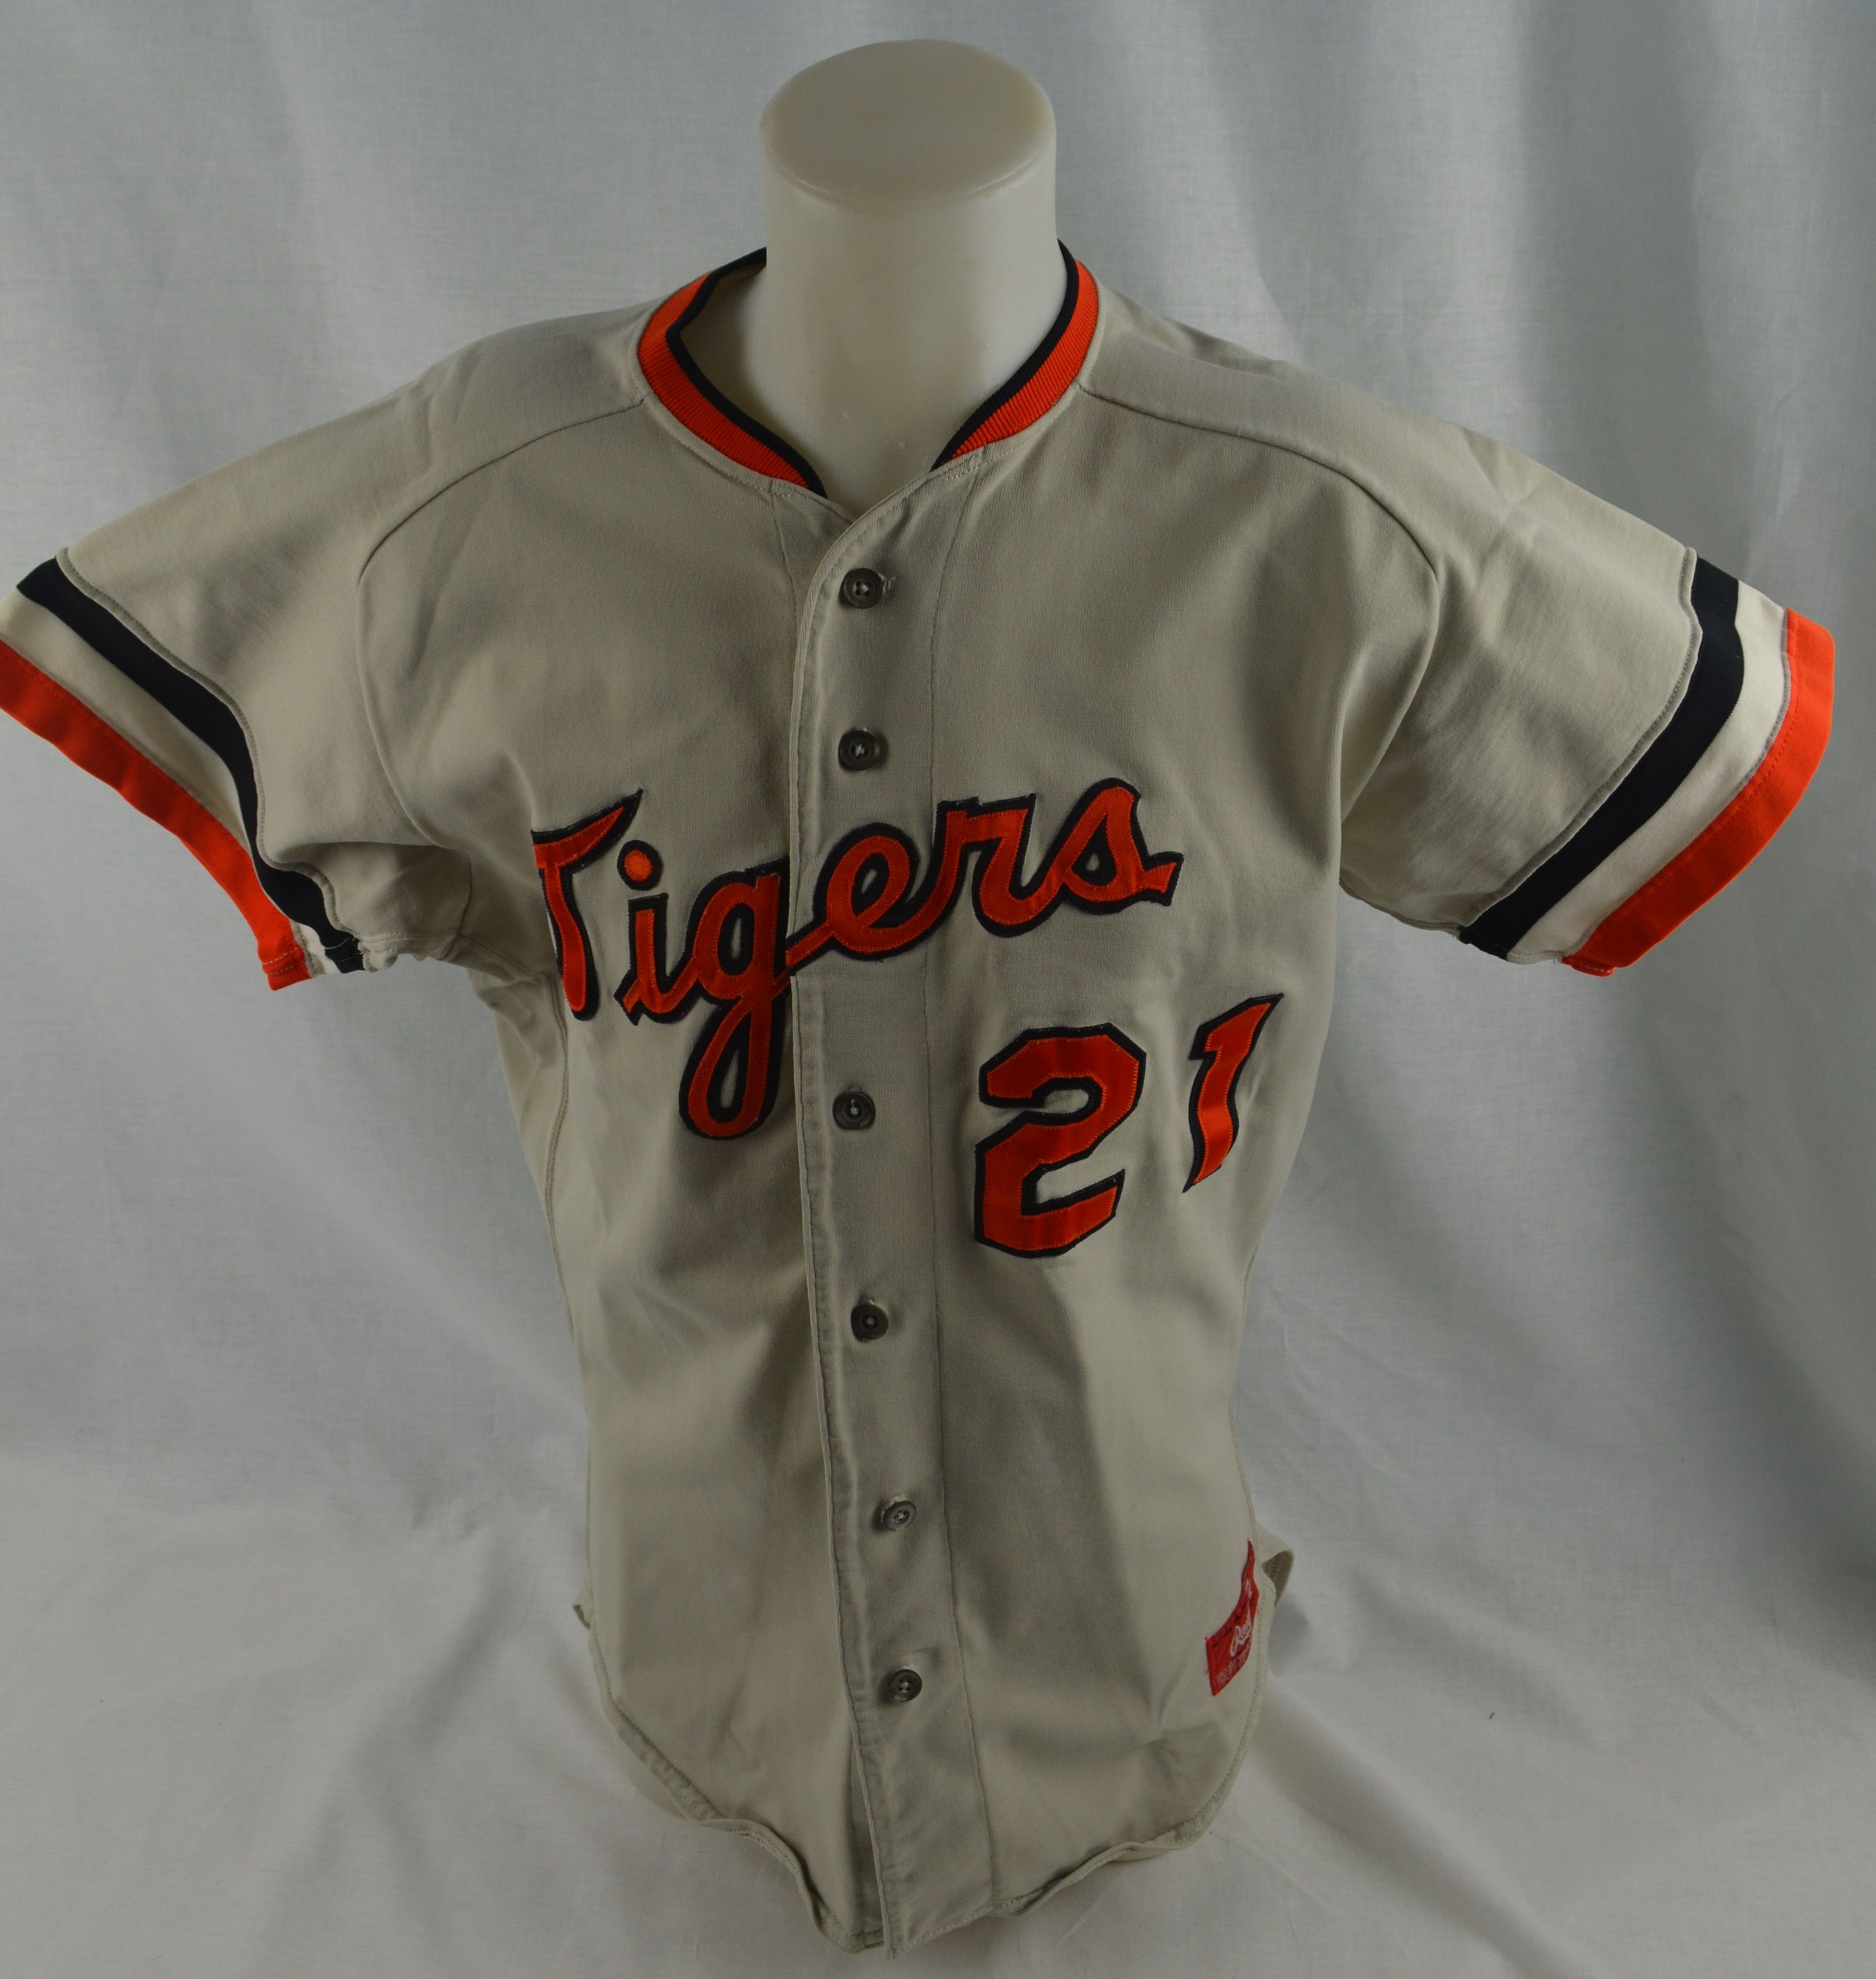 the best attitude 4d98c 5b949 Lot Detail - Princeton University Tigers 1980's Game Worn ...